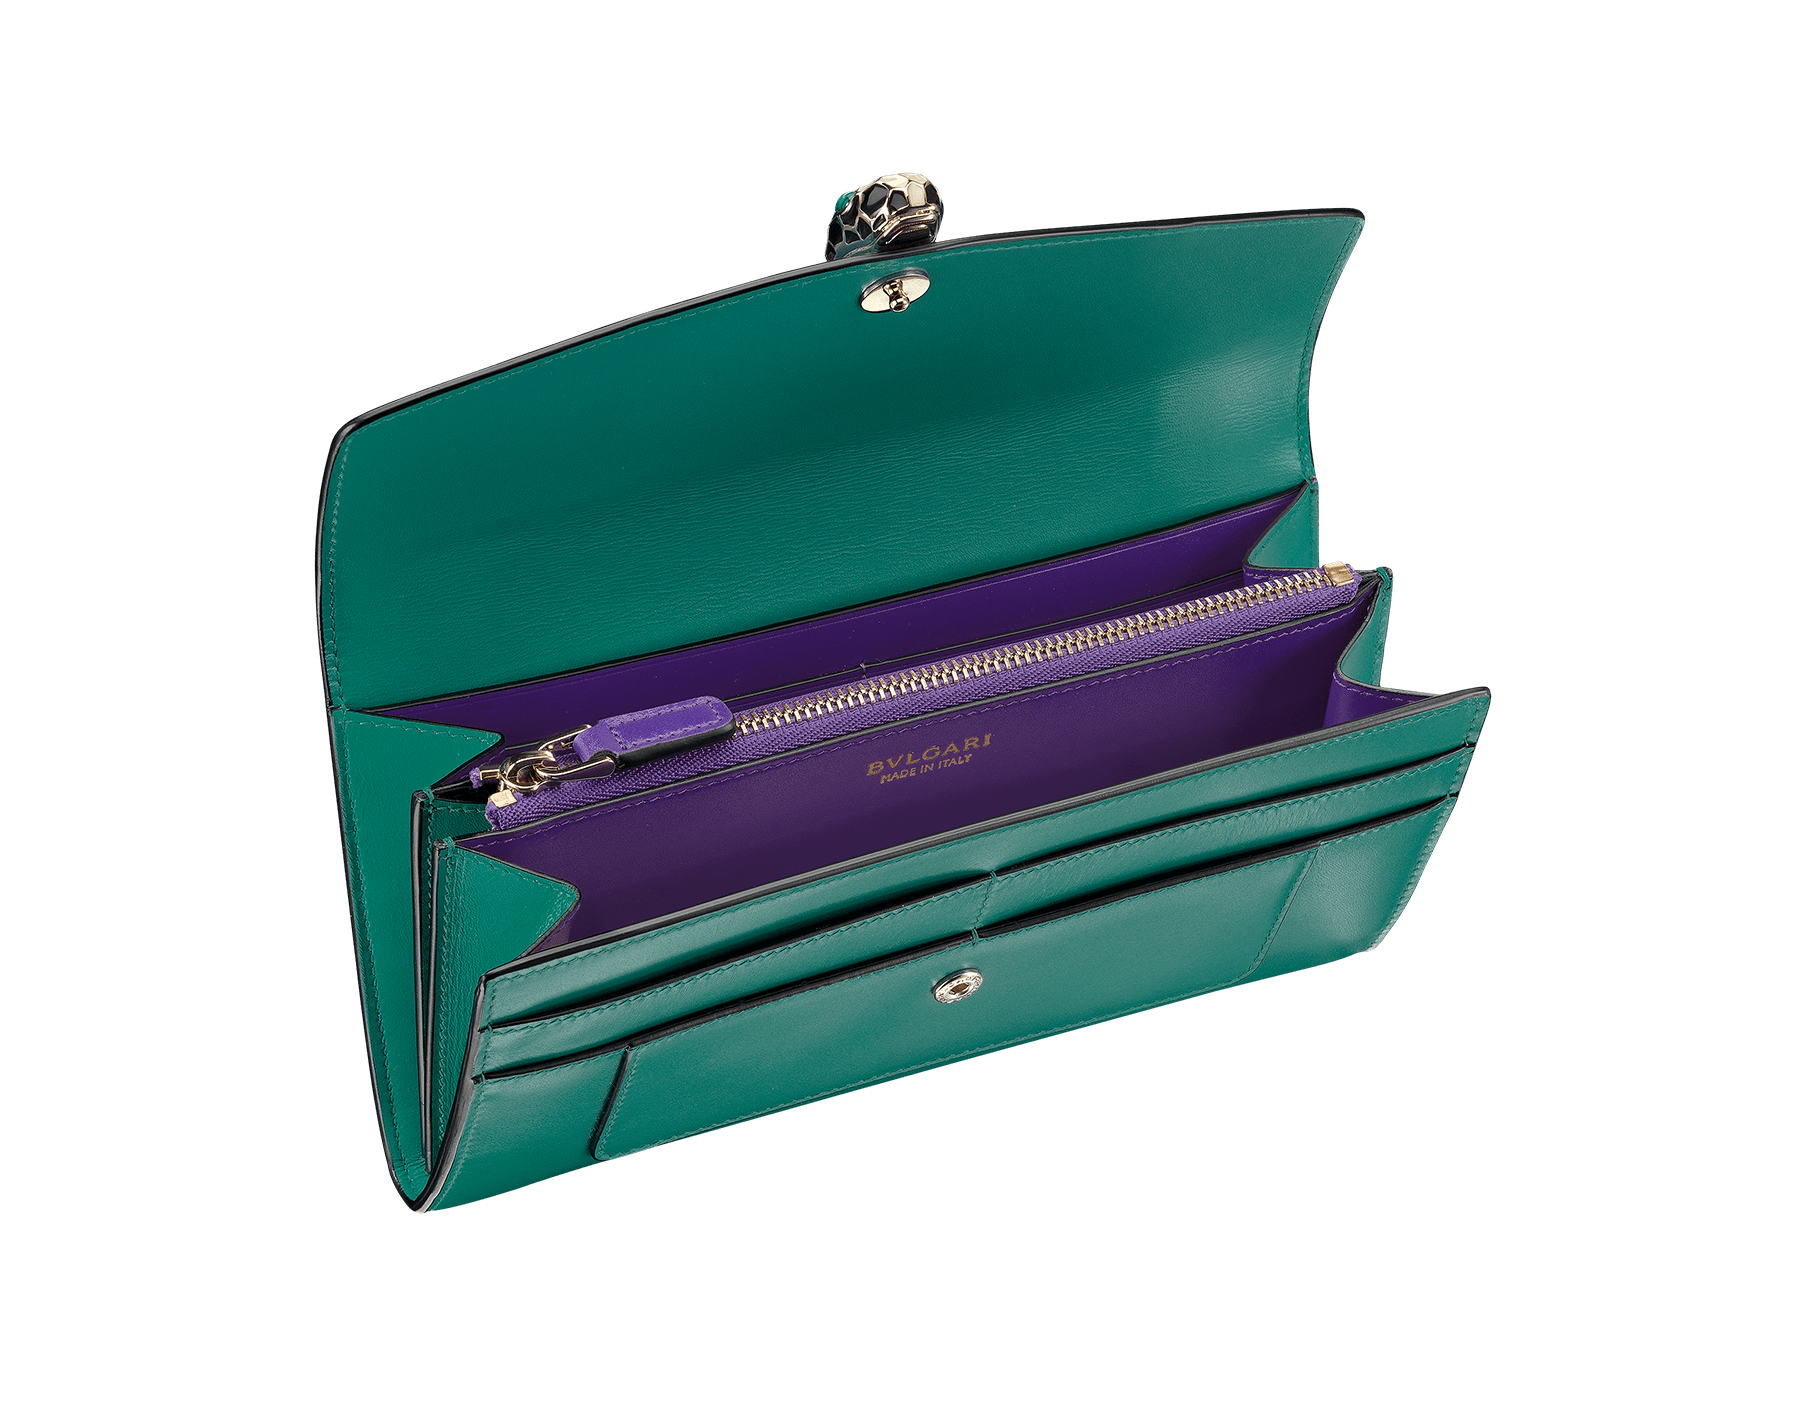 Wallet pochette in emerald green and violet amethyst calf leather with brass light gold plated hardware.Serpenti head stud closure in black and white enamel with eyes in green malachite. 280354 image 2